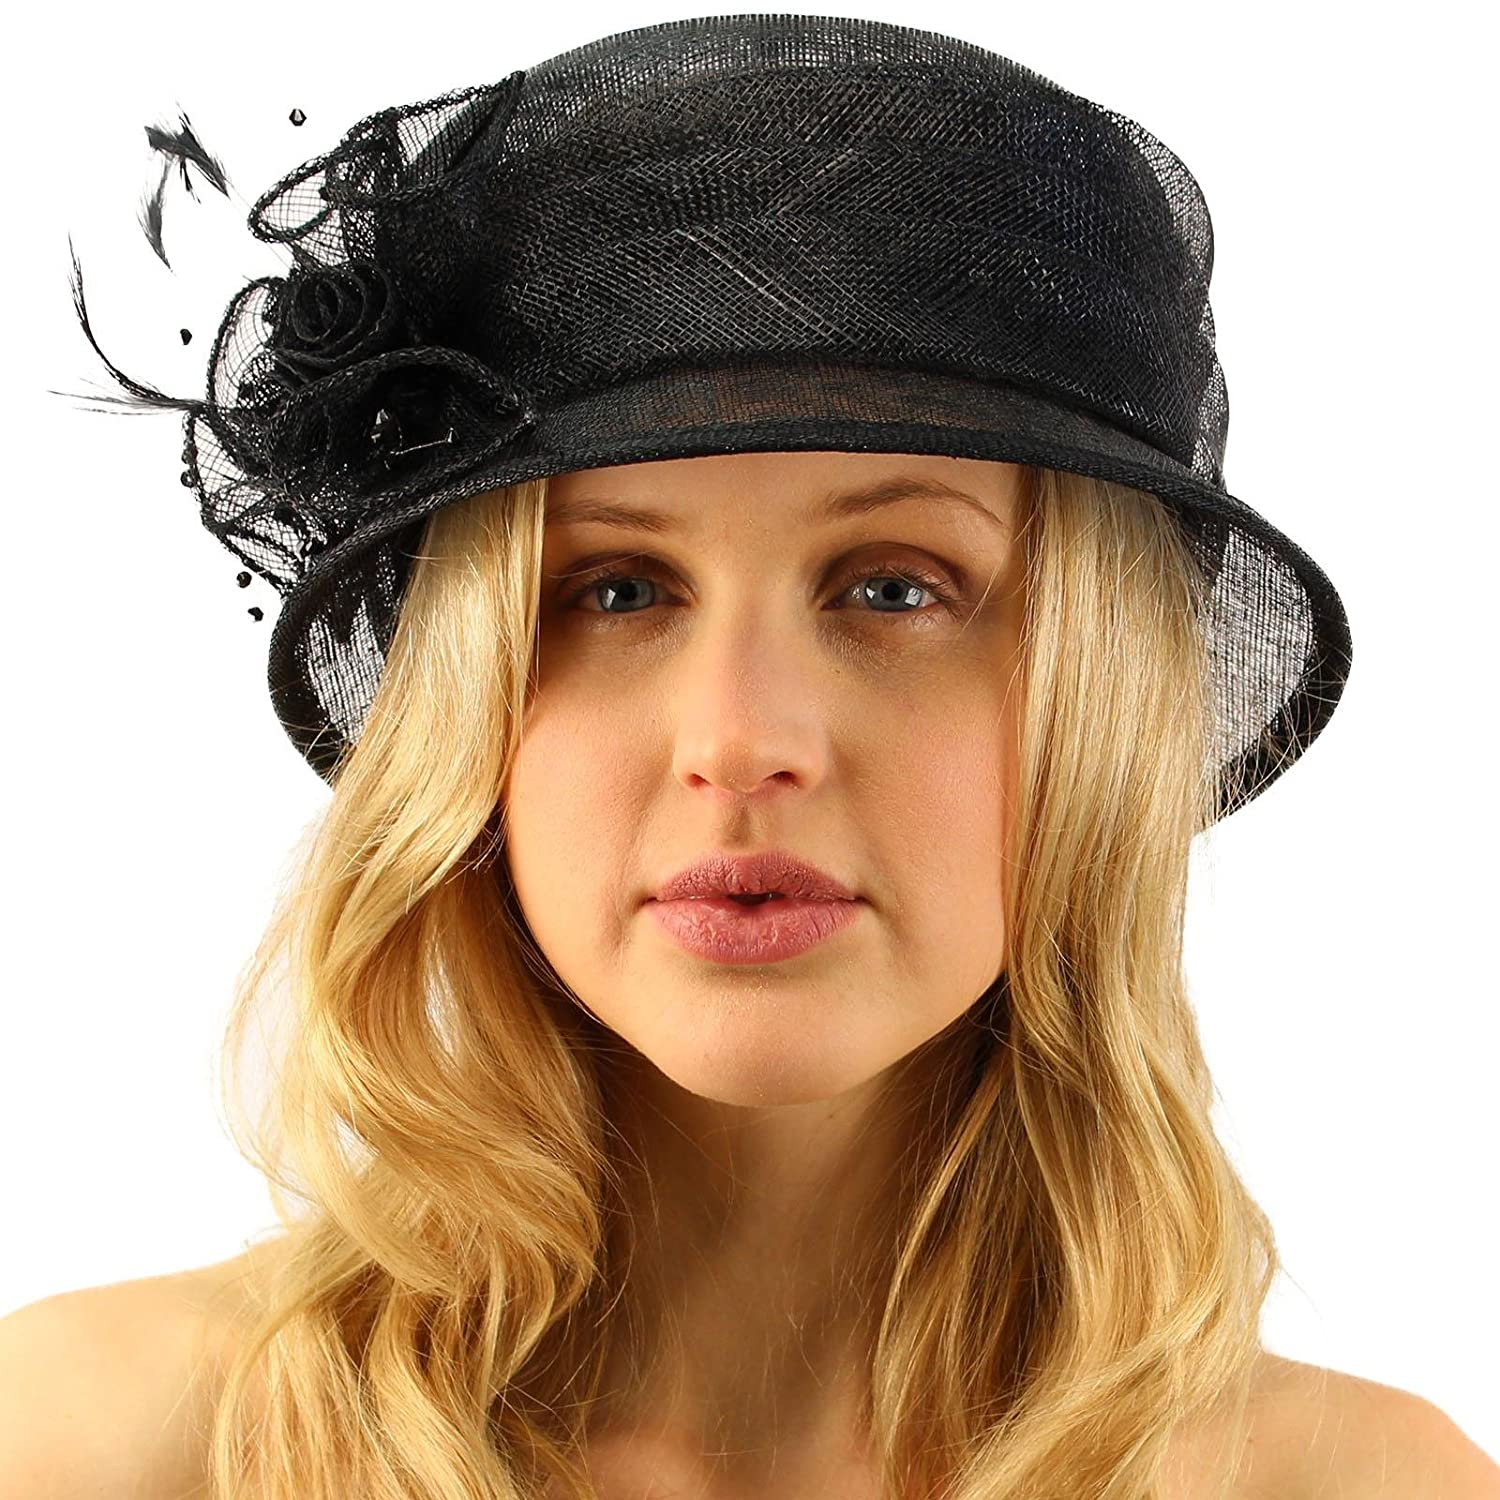 c2ad549b2e87a0 Summer Fancy 1920s Flapper Sinamay Trio Floral Cloche Bucket Church Hat  Black at Amazon Women's Clothing store: